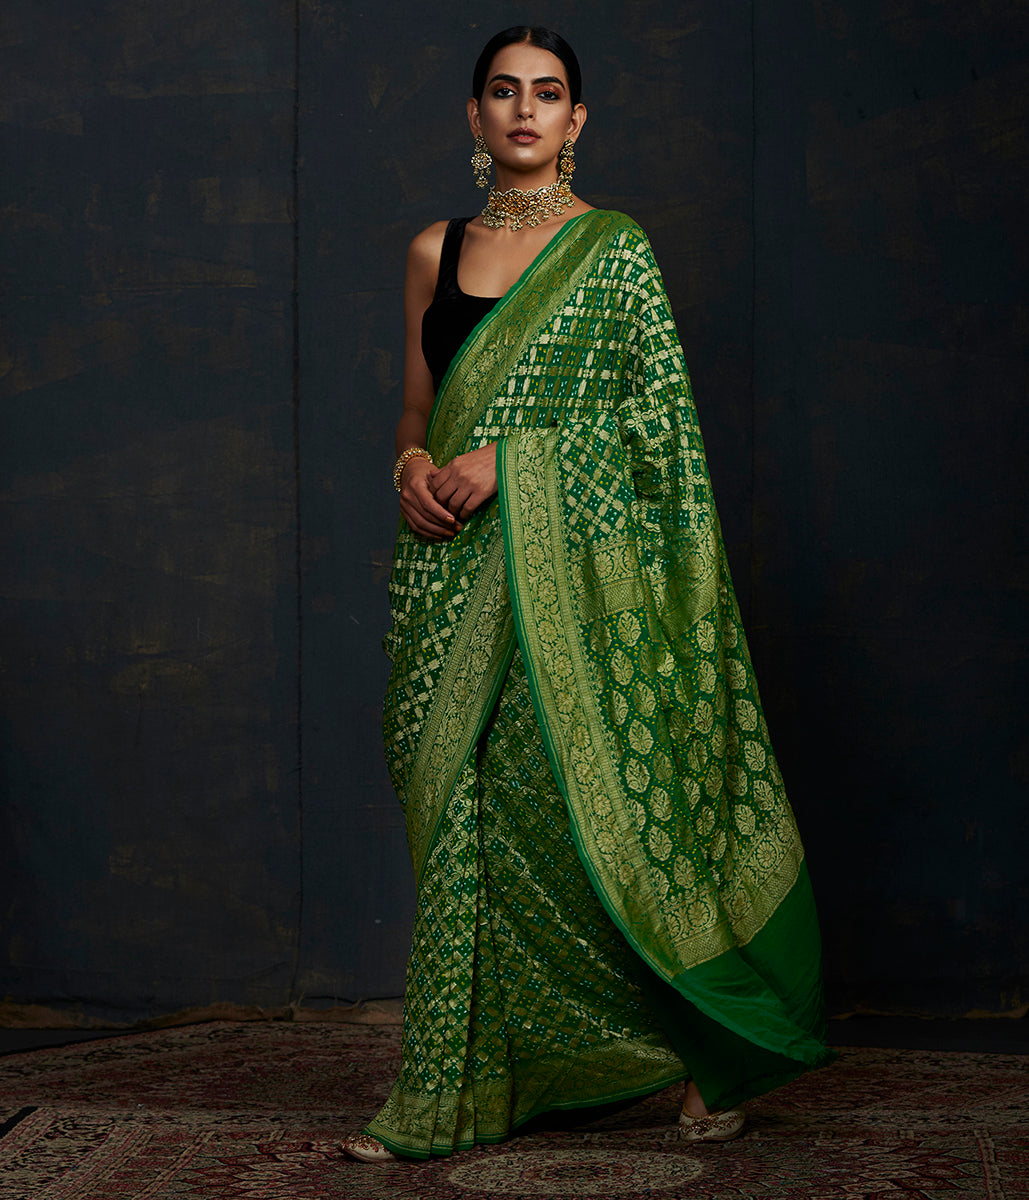 Handwoven Banarasi Bandhej Saree in emerald green